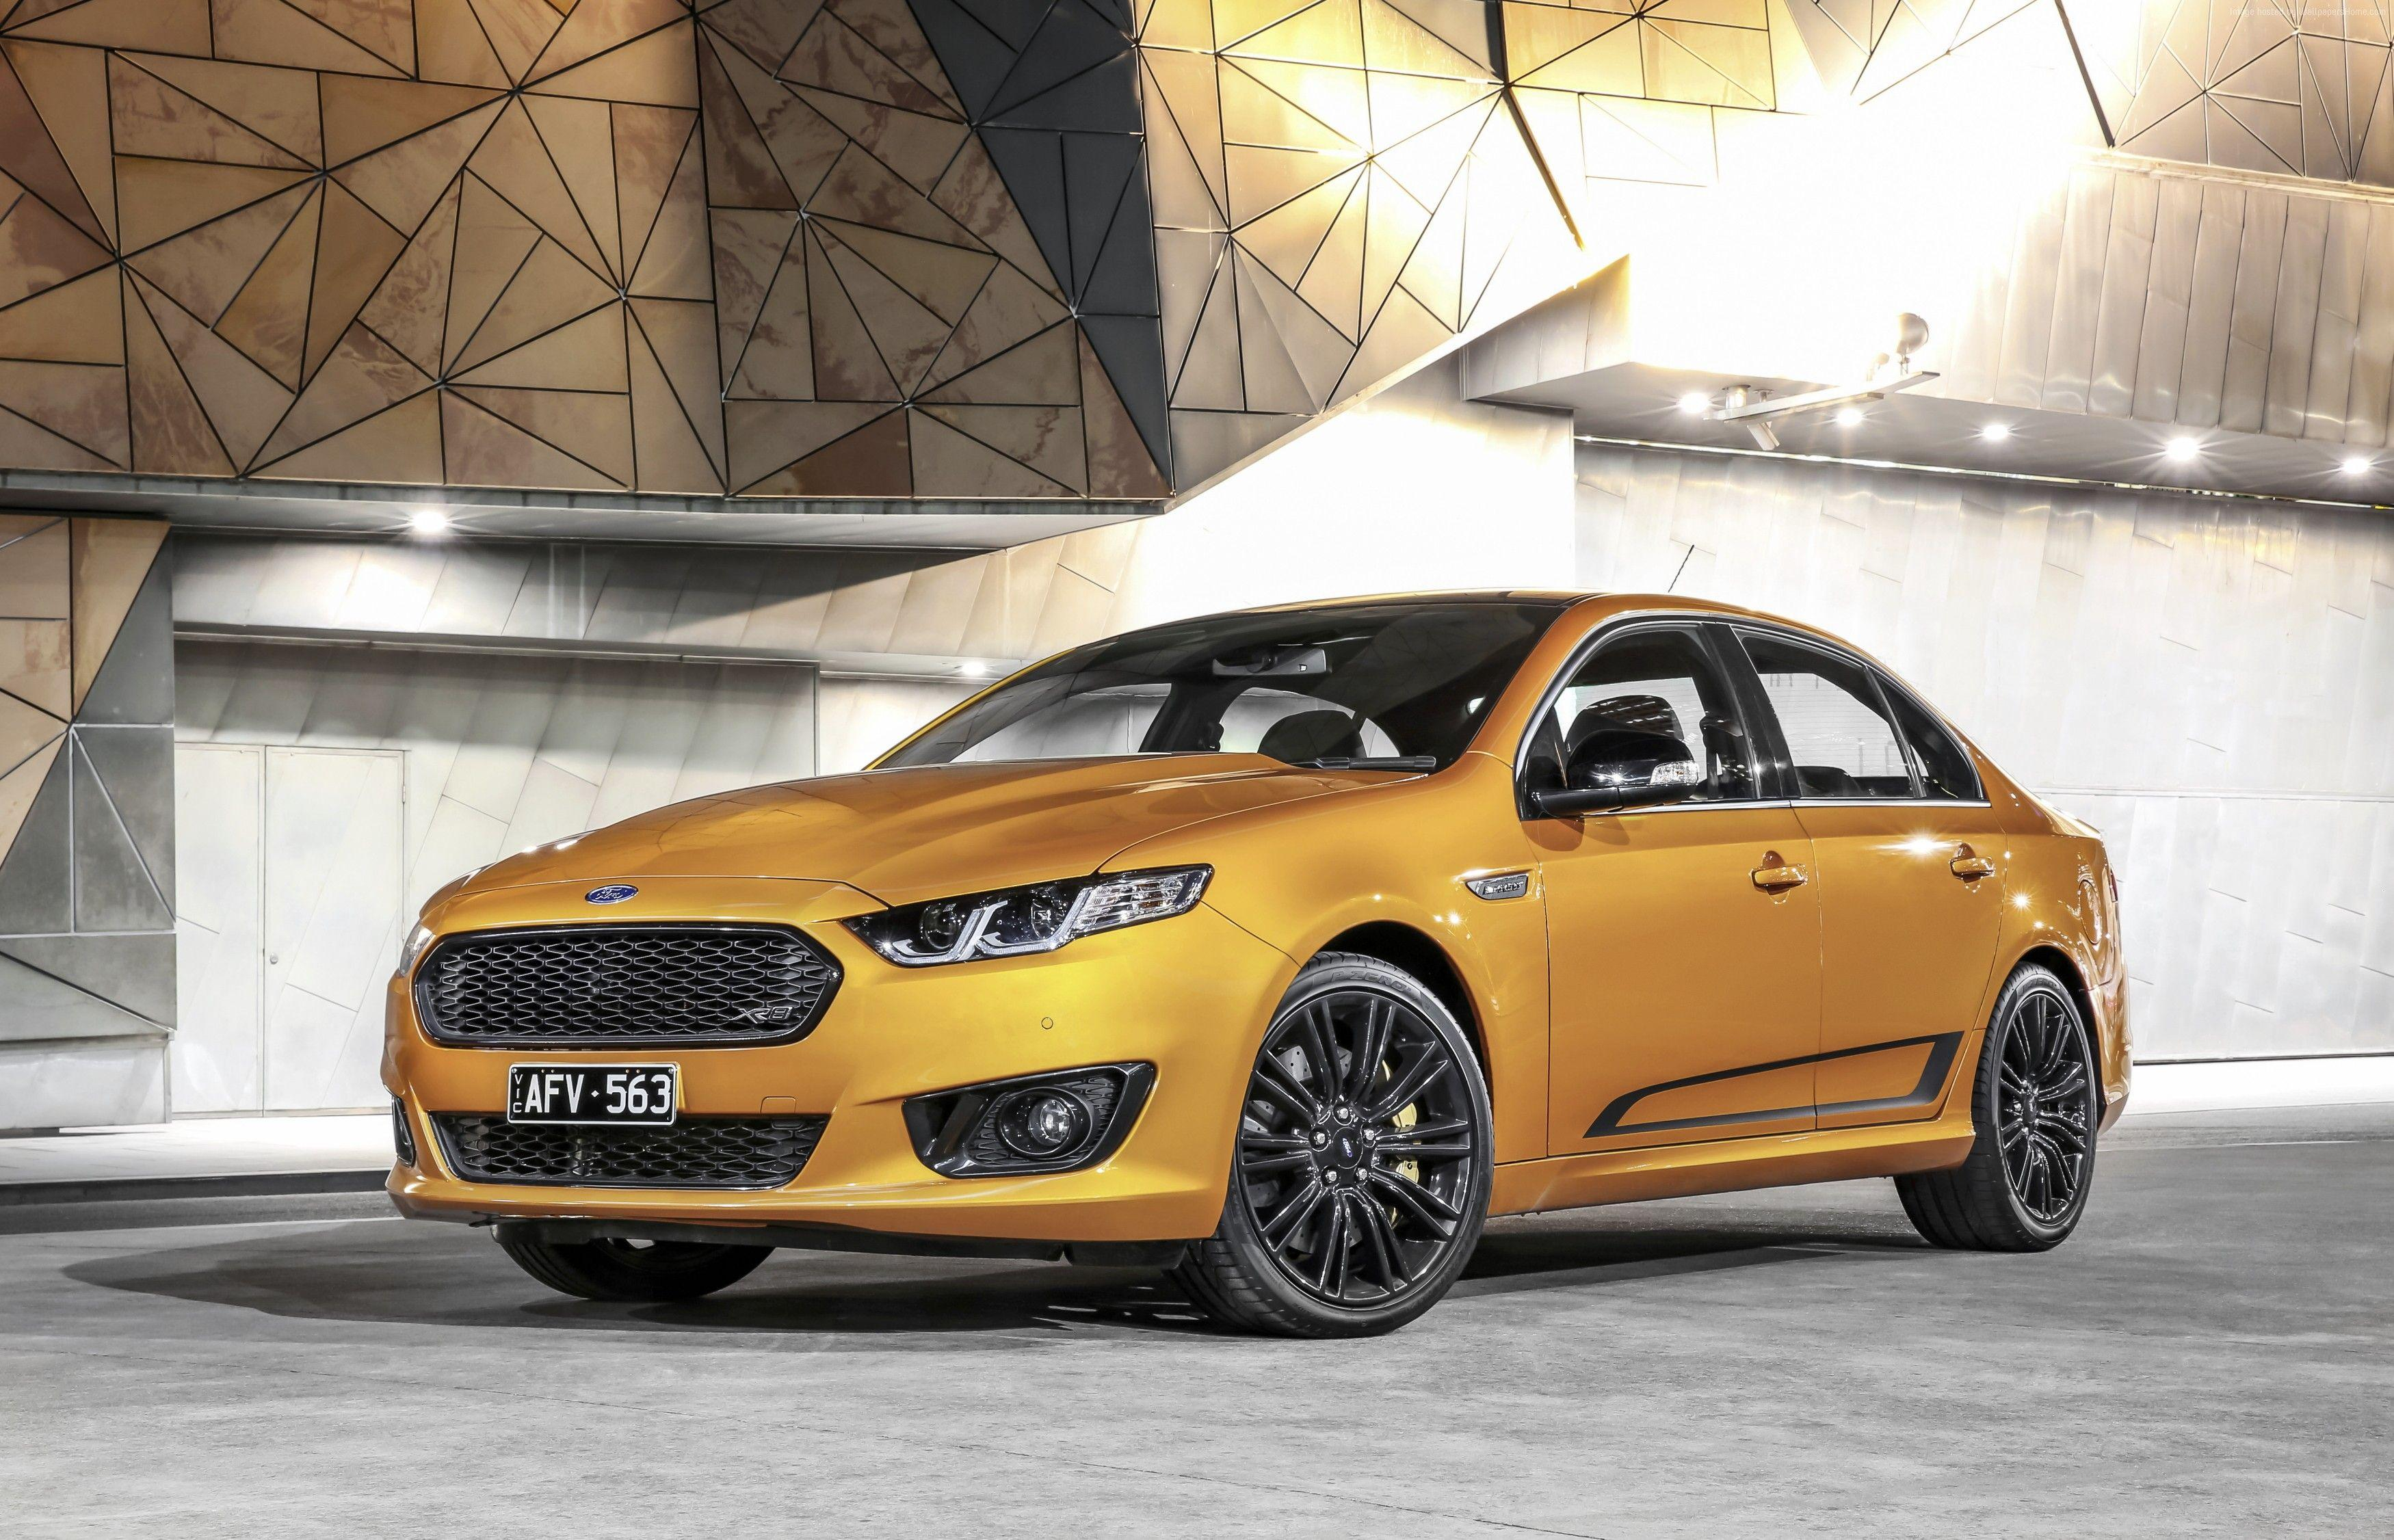 Wallpapers Ford Falcon XR8, limited edition, Sprint, gold, Cars